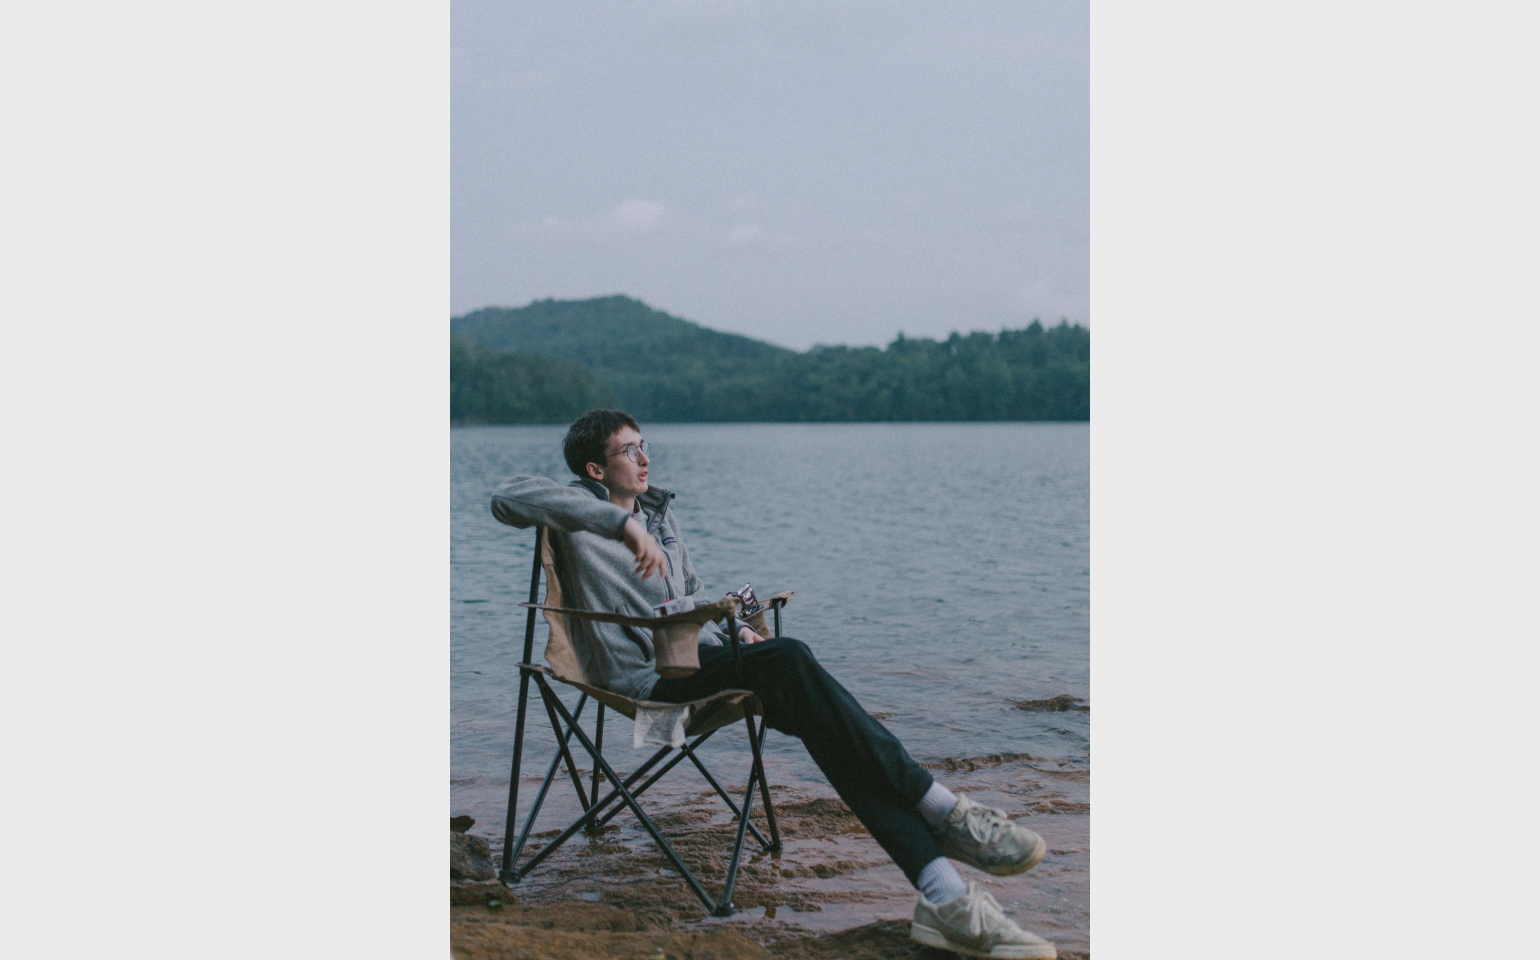 The guy in greyish clothes sitting in a camping chair by the lake original photo by Hunter Matthews